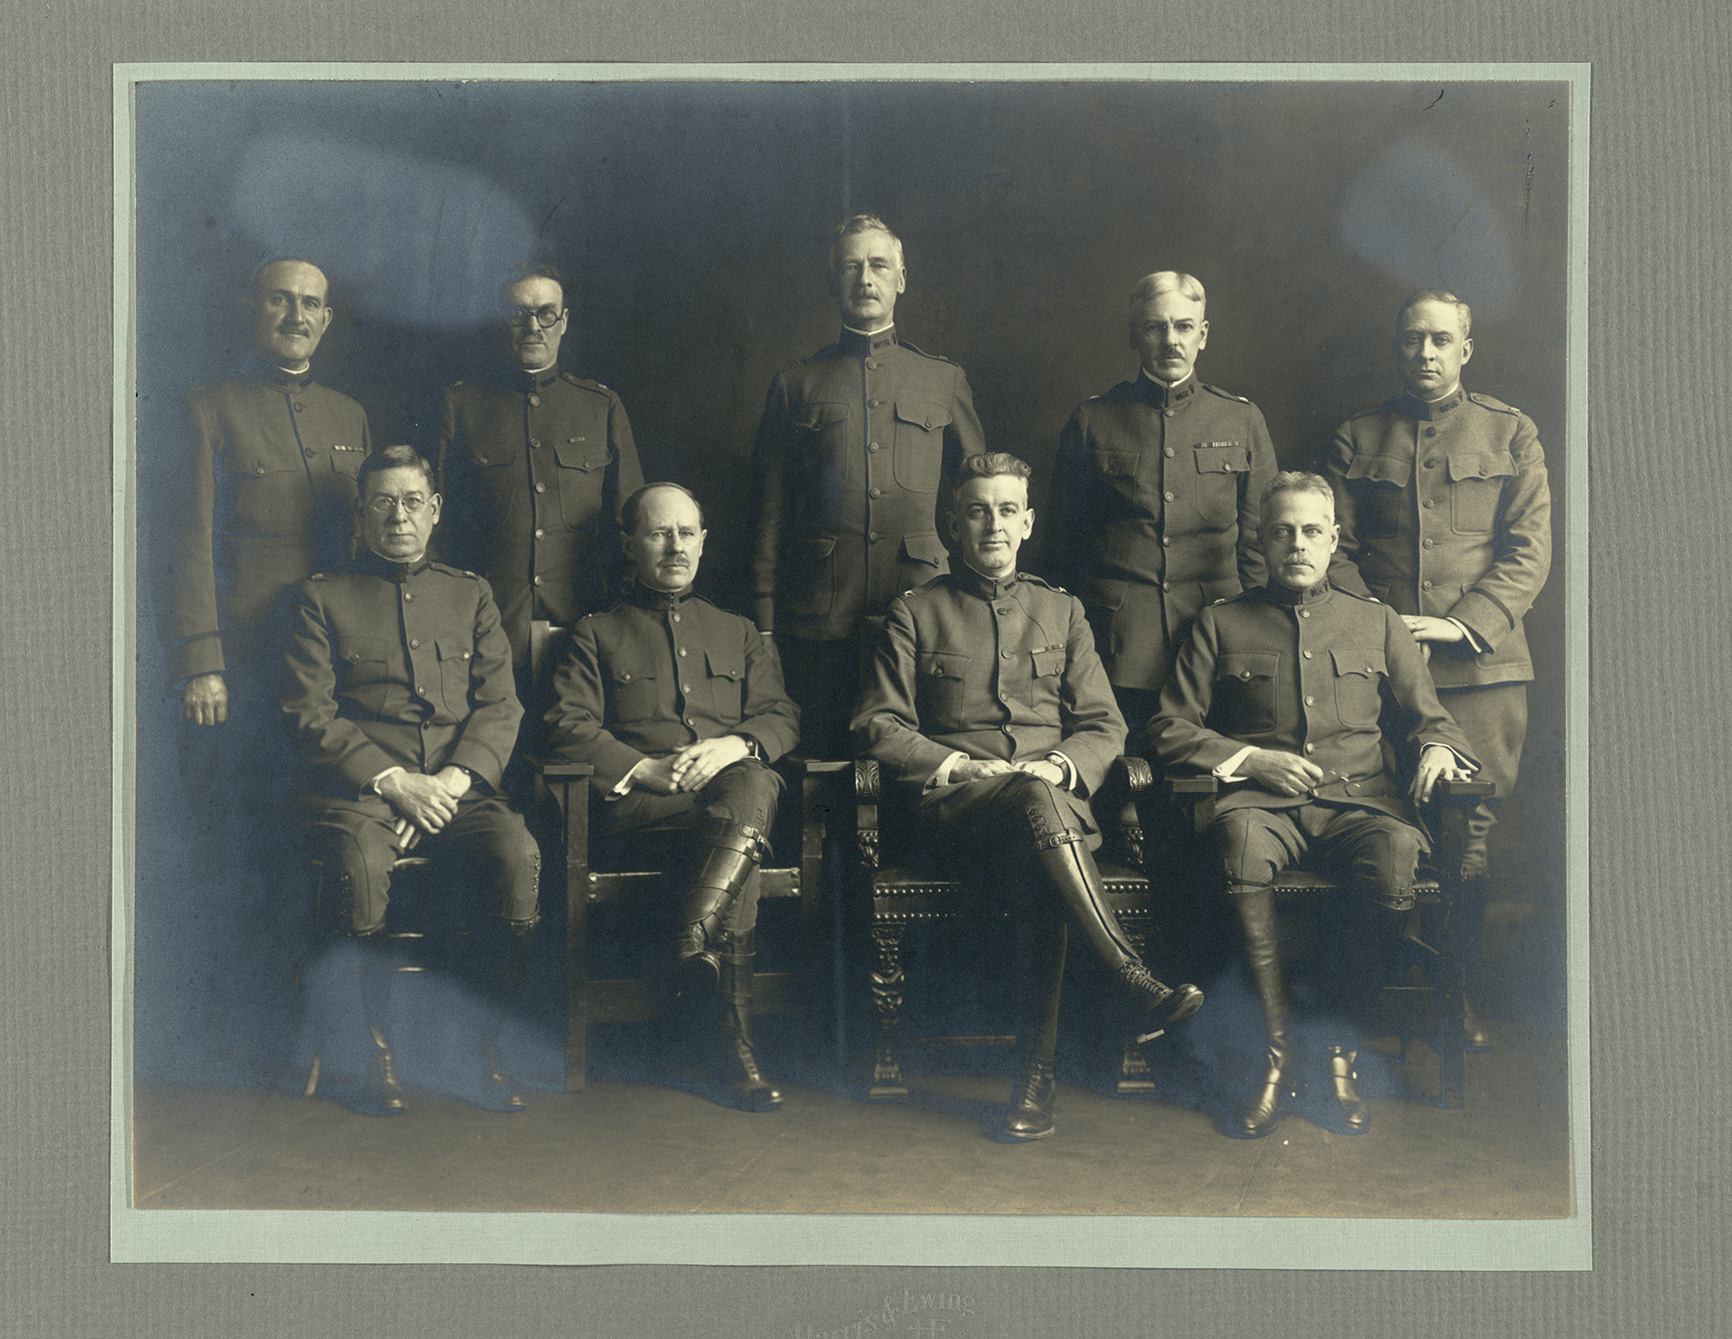 Group portrait with George de Schweinitz (Third person standing in the back row). Reproduction courtesy of the College of Physicians of Philadelphia.